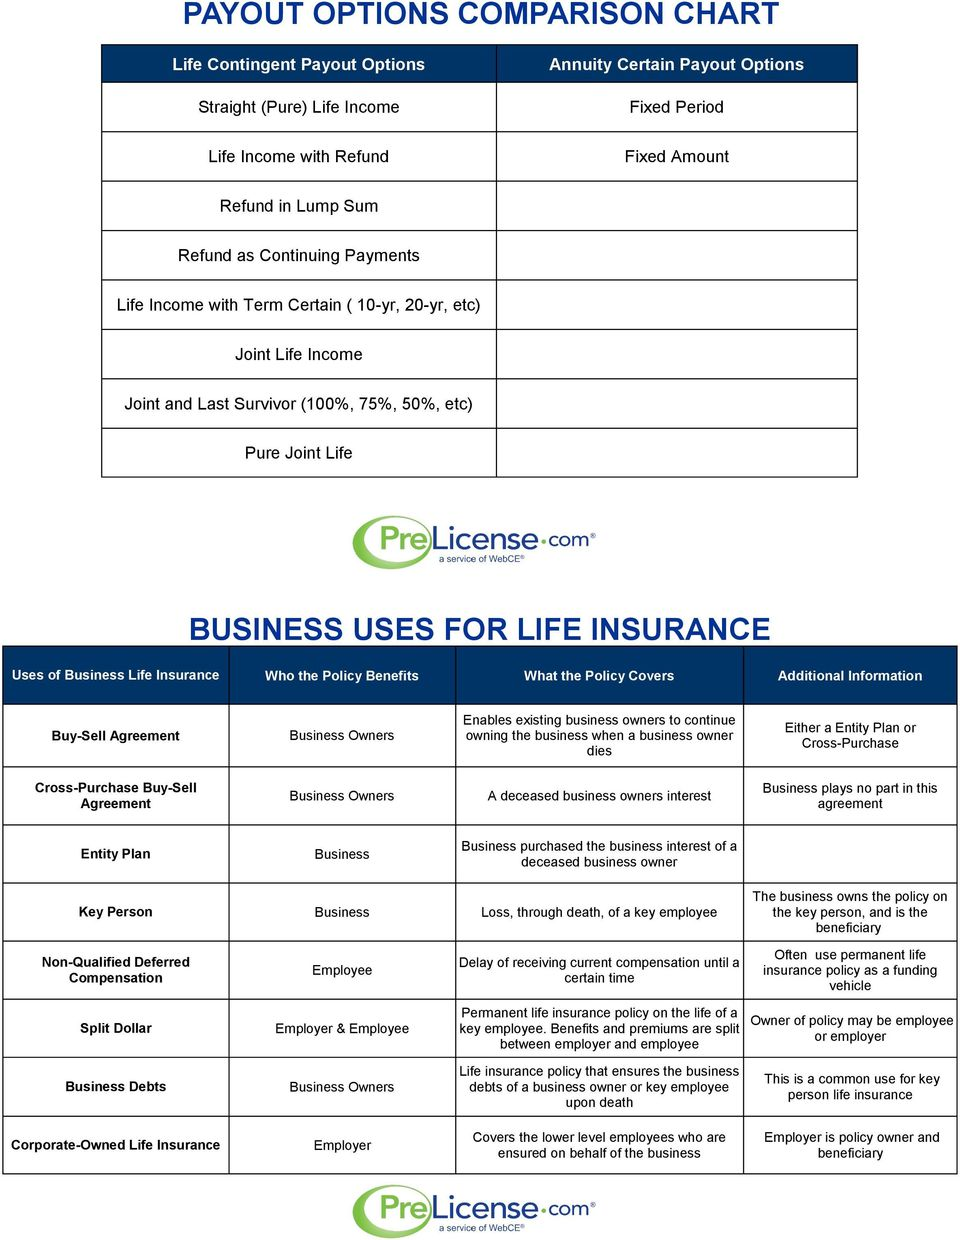 Business Life Insurance Who the Policy Benefits What the Policy Covers Additional Information Buy-Sell Agreement Business Owners Enables existing business owners to continue owning the business when